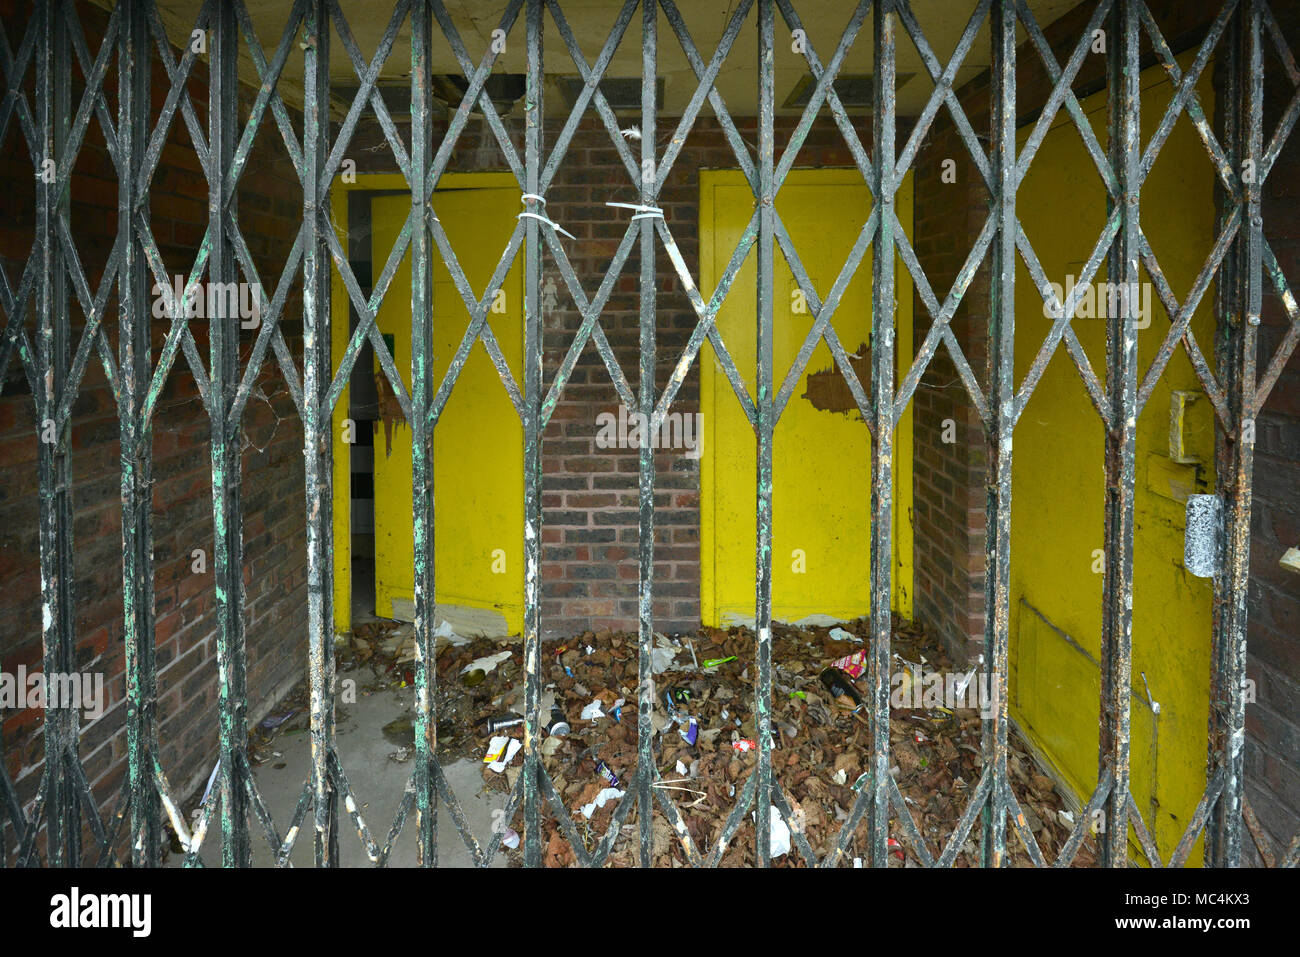 Vandalised yellow doors in a fenced off building, Newhaven, East Sussex. - Stock Image